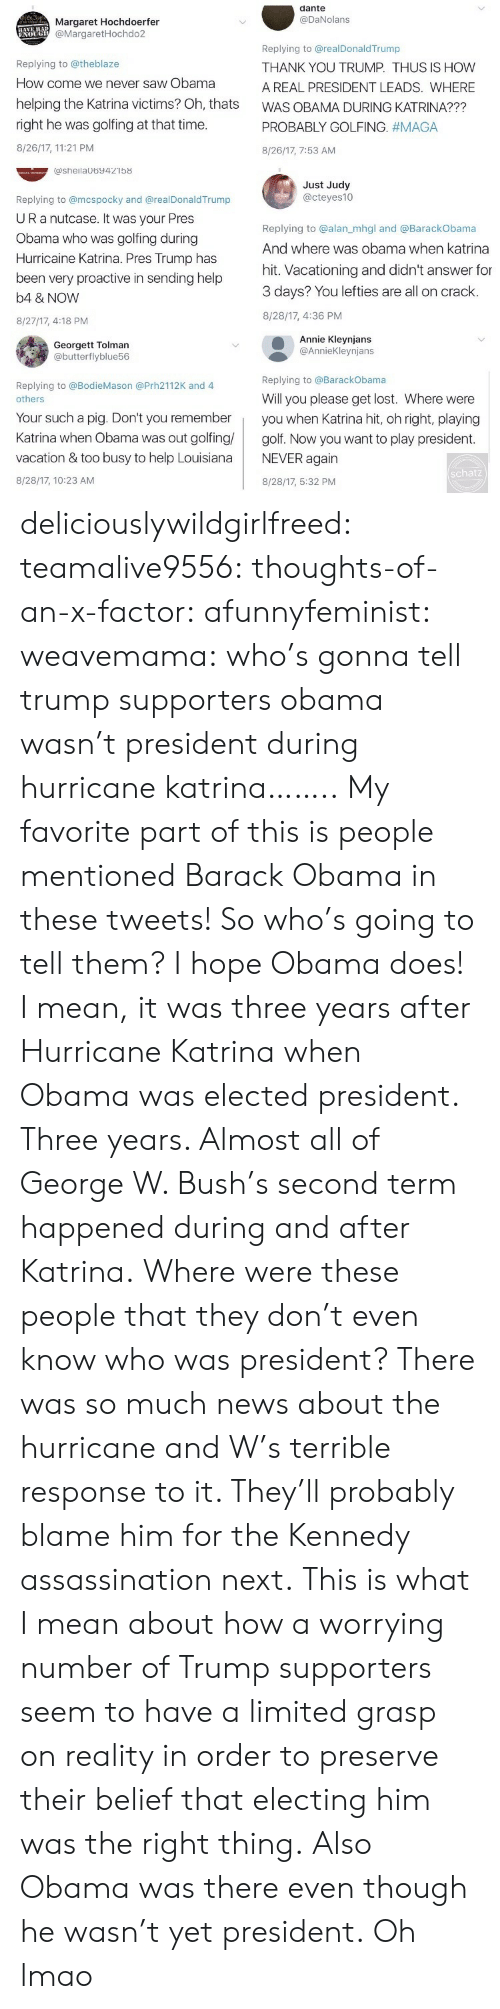 Assassination, George W. Bush, and Lmao: dante  @DaNolans  Margaret Hochdoerfer  @MargaretHochdo2  Replying to @theblaze  How come we never saw Obama  helping the Katrina victims? Oh, thats  right he was golfing at that time  8/26/17, 11:21 PM  Replying to @realDonaldTrump  THANK YOU TRUMP. THUS IS HOW  A REAL PRESIDENT LEADS. WHERE  WAS OBAMA DURING KATRINA???  PROBABLY GOLFING. #MAGA  8/26/17, 7:53 AM  ashelaUb9421b8  Just Judy  @cteyes10  Replying to @mcspocky and @realDonaldTrump  UR a nutcase. It Was your Pres  Obama who was golfing during  Hurricaine Katrina. Pres Trump has  been very proactive in sending help  b4 & NOVW  8/27/17, 4:18 PM  Replying to @alan_mhgl and @BarackObama  And where was obama when katrina  hit. Vacationing and didn't answer for  3 days? You lefties are all on crack.  8/28/17, 4:36 PM  Georgett Tolman  @butterflyblue56  Annie Kleynjans  @AnnieKleynjans  Replying to @BarackObama  Replying to @BodieMason @Prh2112K and 4  Will you please get lost. Where were  others  Your such a pig. Don't you rememberyou when Katrina hit, oh right, playing  Katrina when Obama was out golfing golf. Now you want to play president  vacation & too busy to help LouisianaNEVER again  8/28/17, 10:23 AM  schatz  8/28/17, 5:32 PM deliciouslywildgirlfreed:  teamalive9556:   thoughts-of-an-x-factor:   afunnyfeminist:  weavemama: who's gonna tell trump supporters obama wasn't president during hurricane katrina…….. My favorite part of this is people mentioned Barack Obama in these tweets! So who's going to tell them? I hope Obama does! I mean, it was three years after Hurricane Katrina when Obama was elected president. Three years. Almost all of George W. Bush's second term happened during and after Katrina.Where were these people that they don't even know who was president? There was so much news about the hurricane and W's terrible response to it. They'll probably blame him for the Kennedy assassination next.  This is what I mean about how a worrying number of Trump 